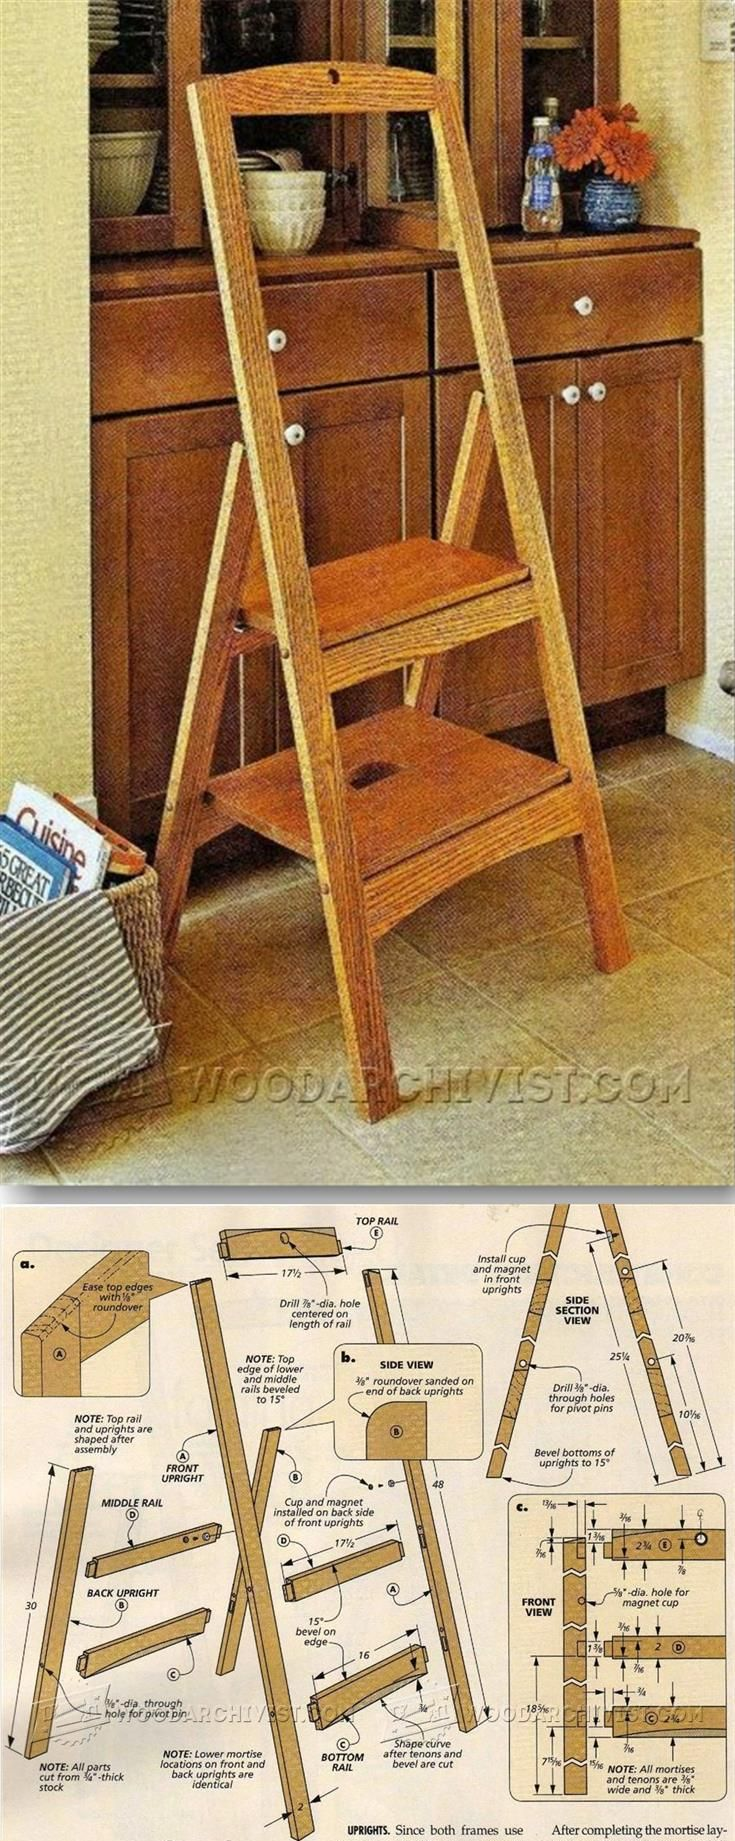 314 Best Images About Woodworking On Pinterest Folding